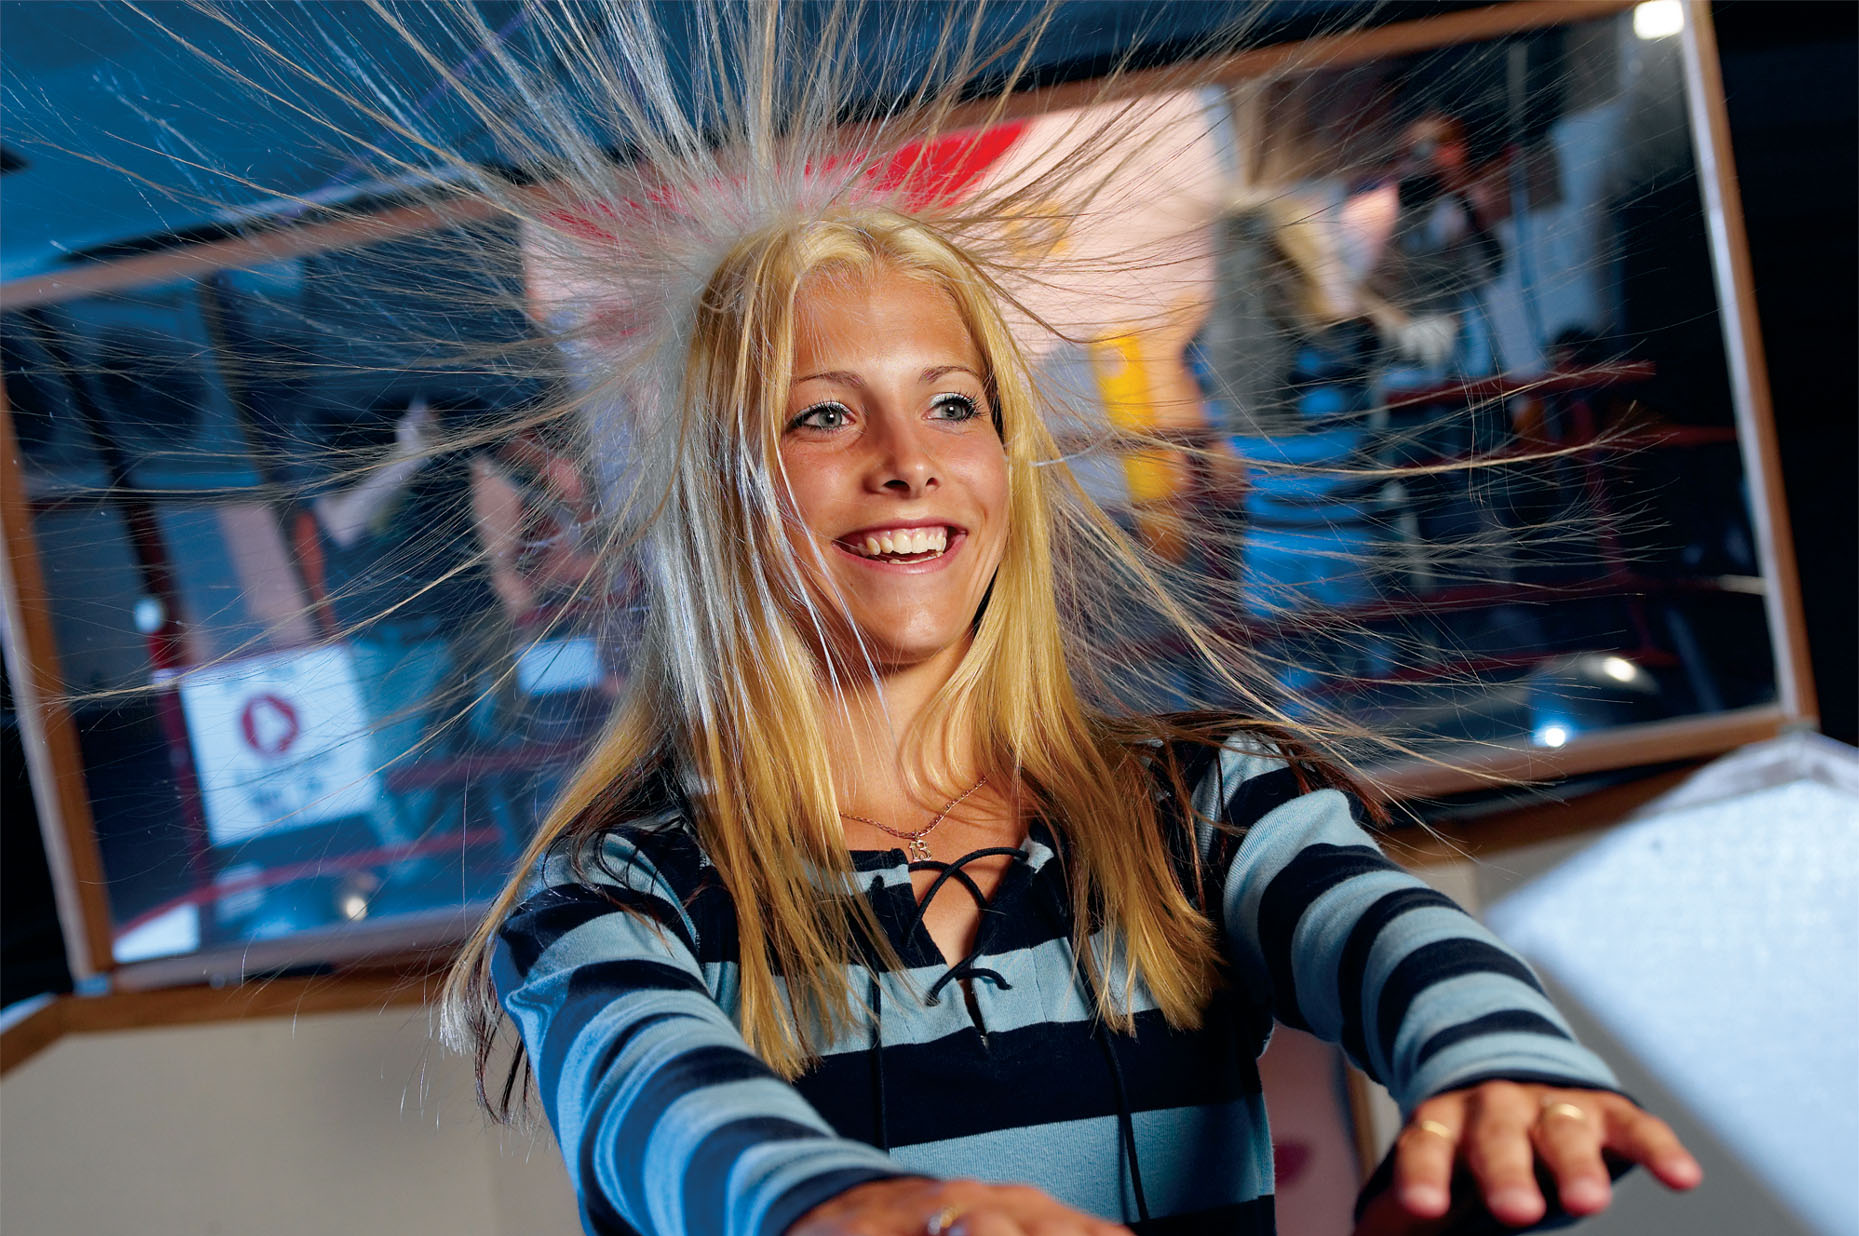 hair-on-picture-generator-1